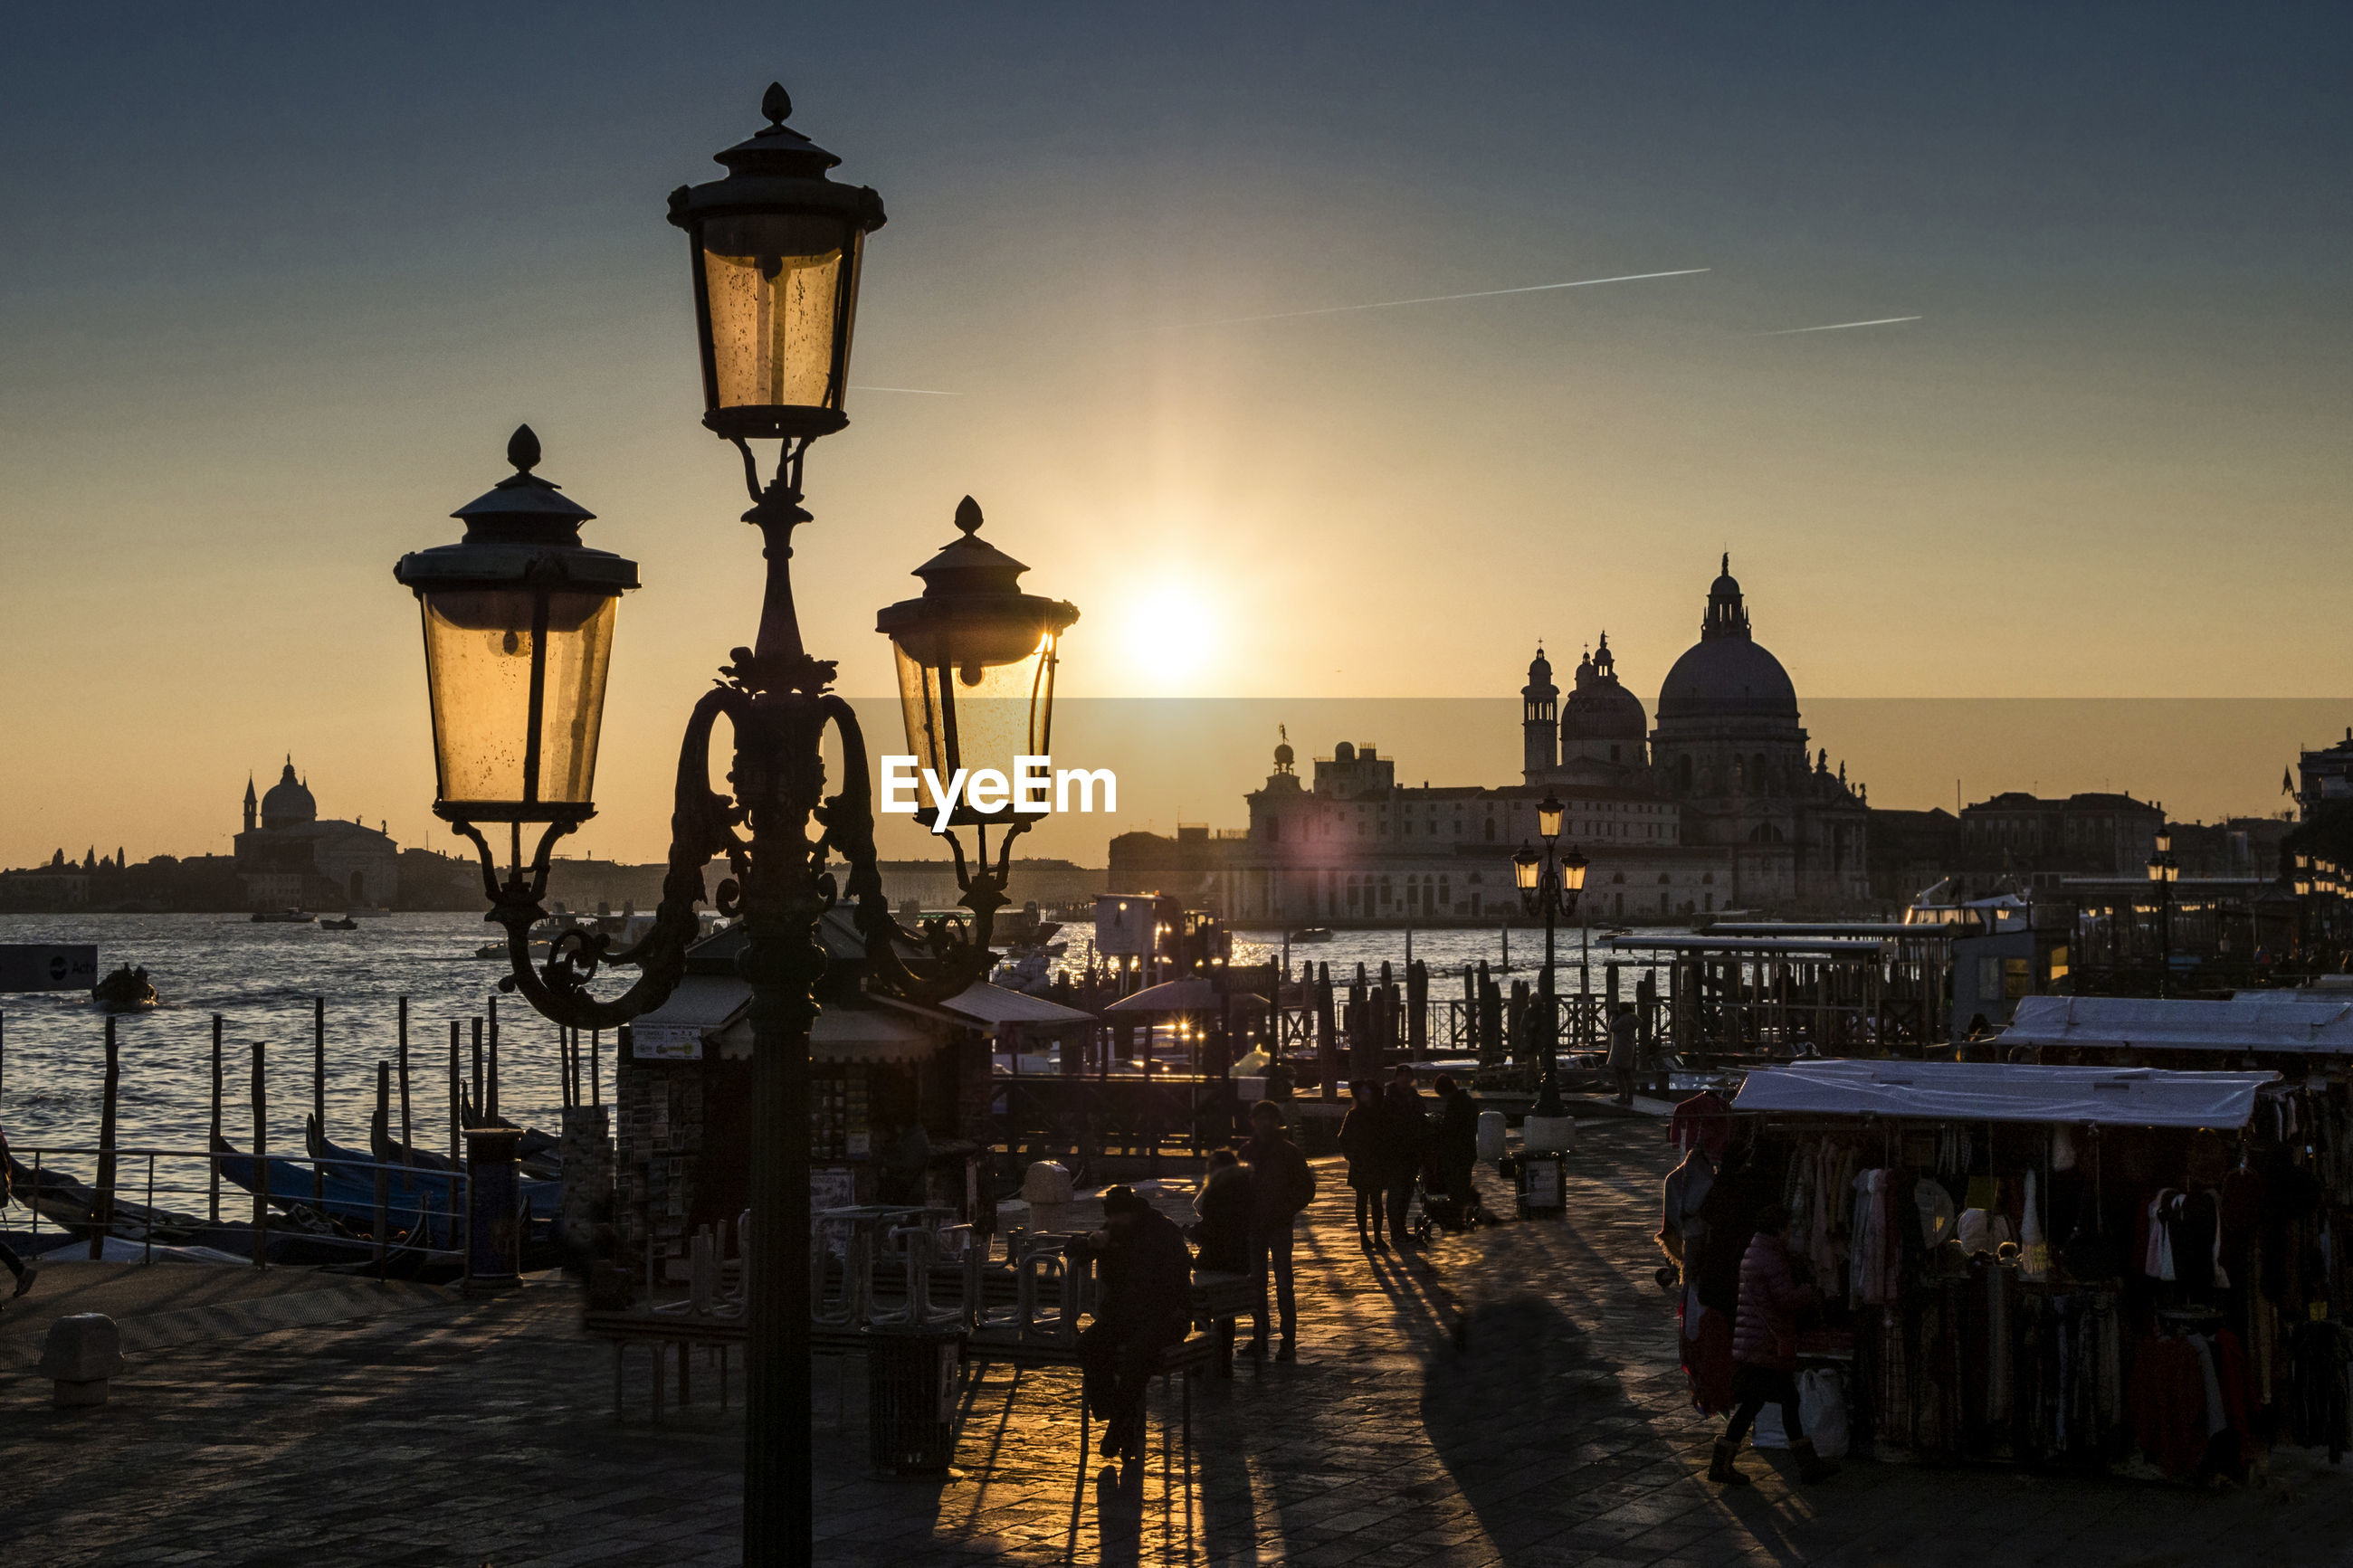 Gas light and people on promenade by grand canal with santa maria della salute during sunset